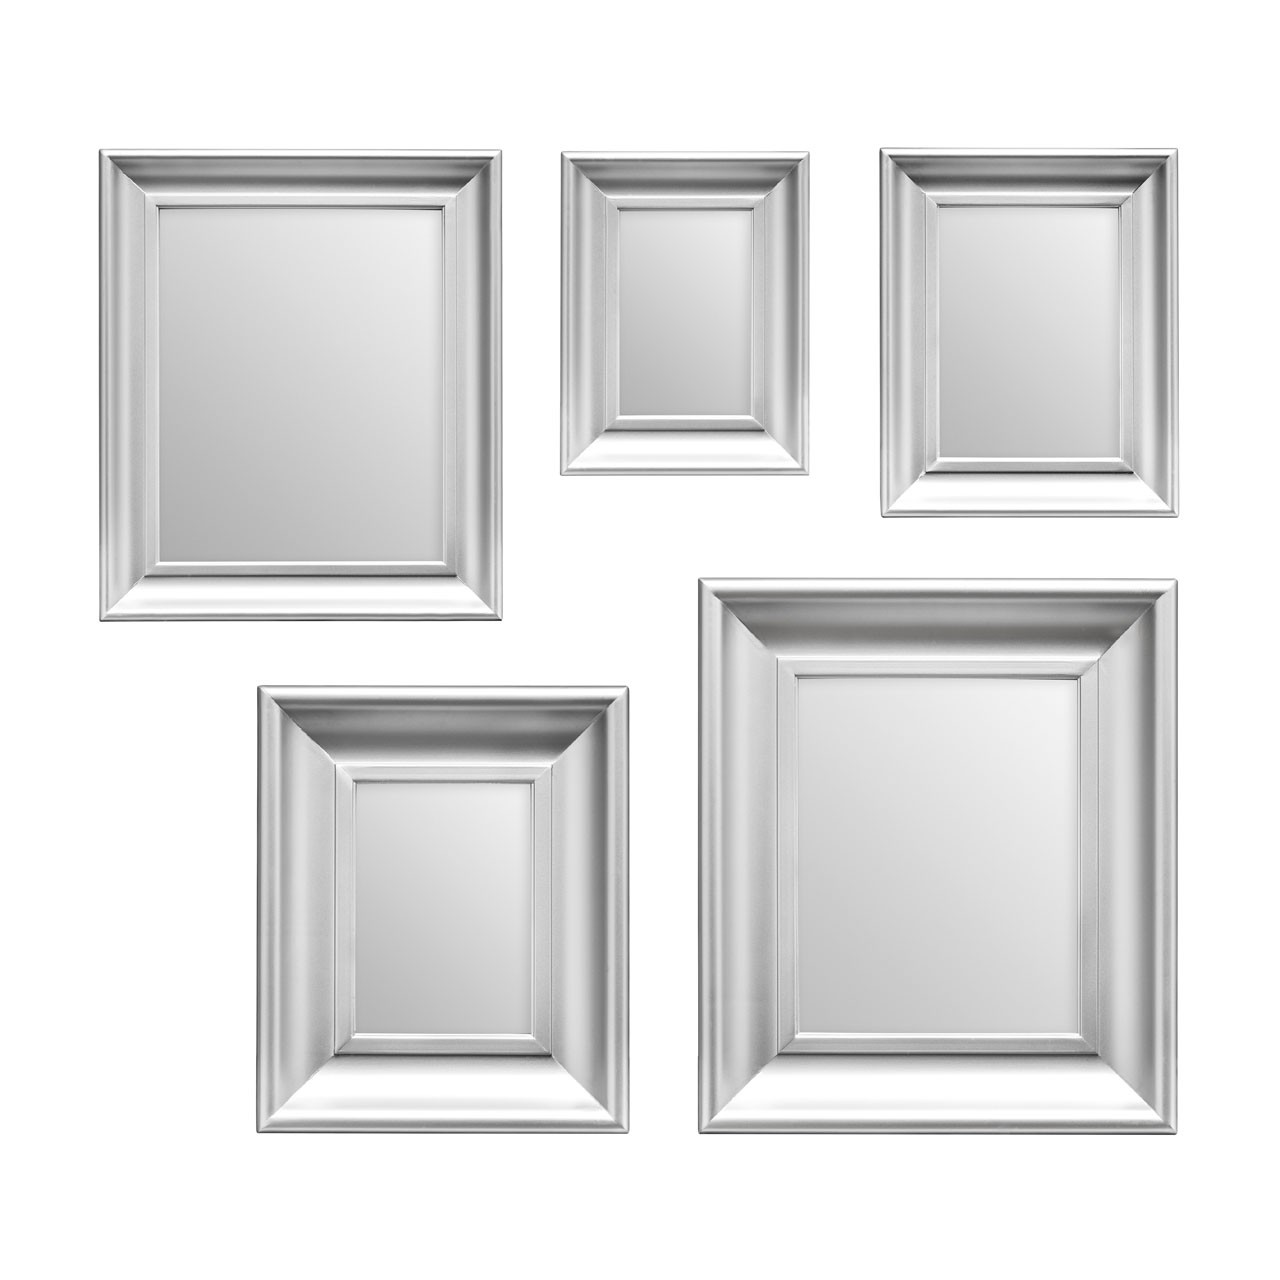 Prime Furnishing 5pc Mirror Set - Silver Frame